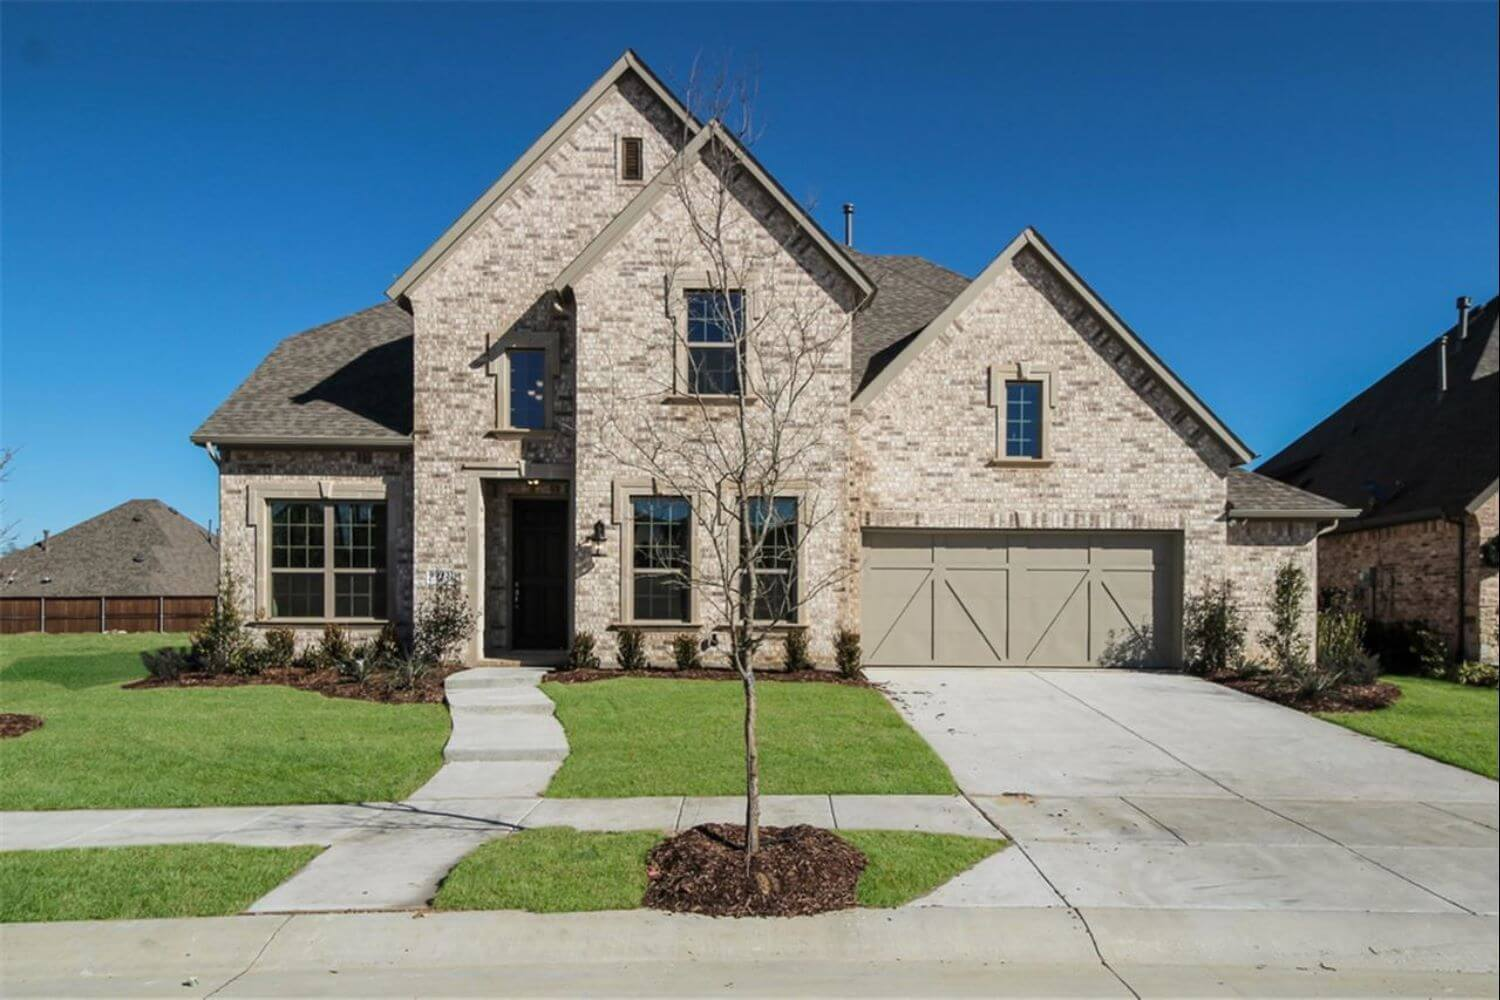 Single Family for Active at Caddo 9913 Compass Rose Ct Oak Point, Texas 75068 United States